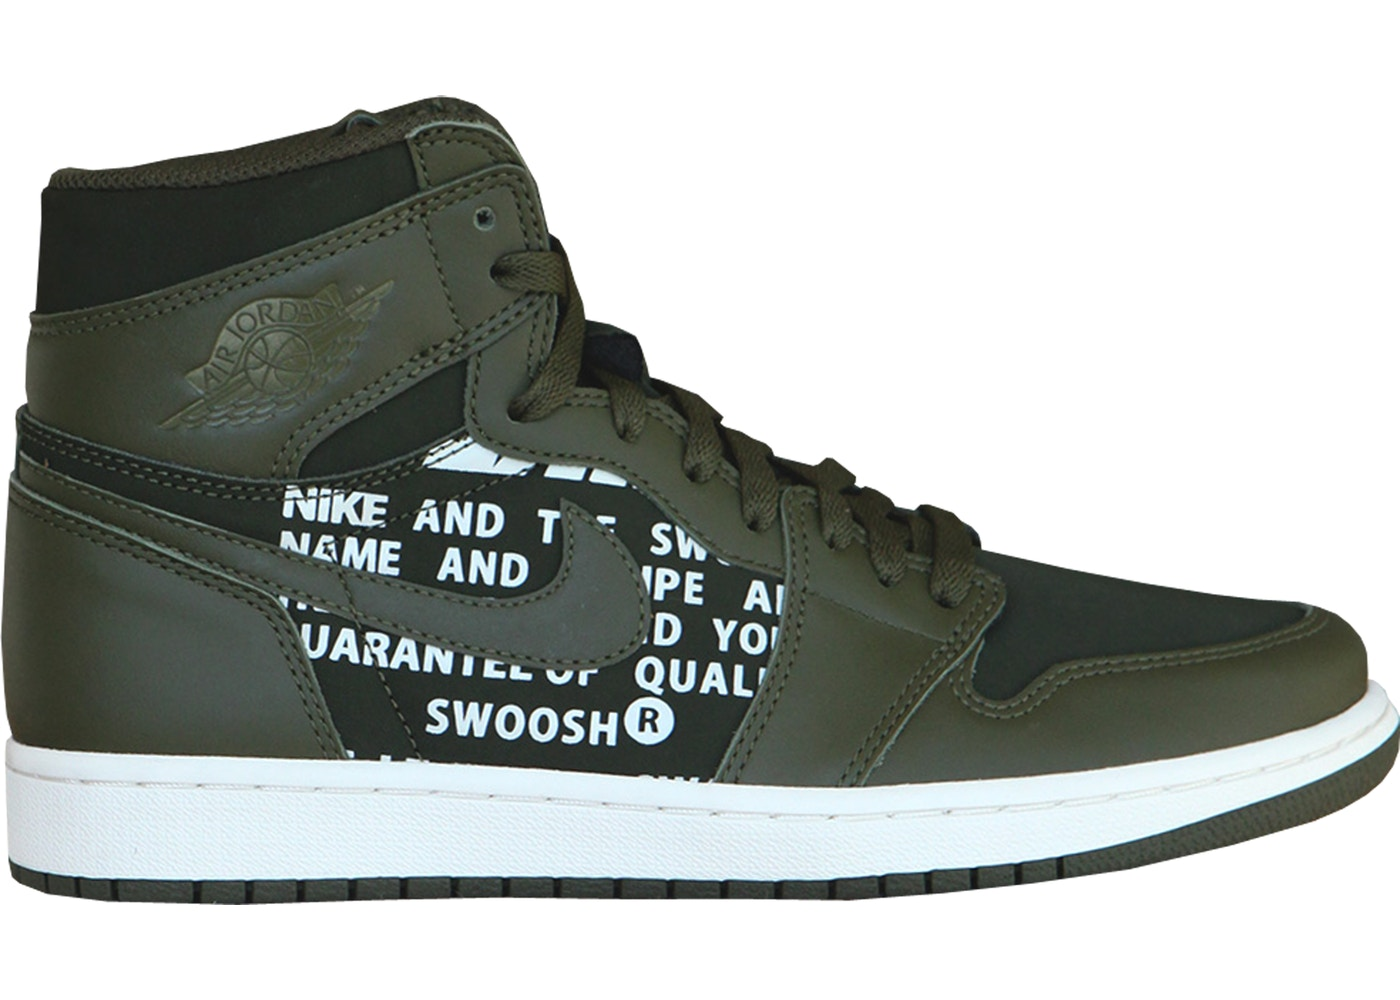 106ad6262cc4fe Jordan 1 Retro High Olive Canvas - 555088-300